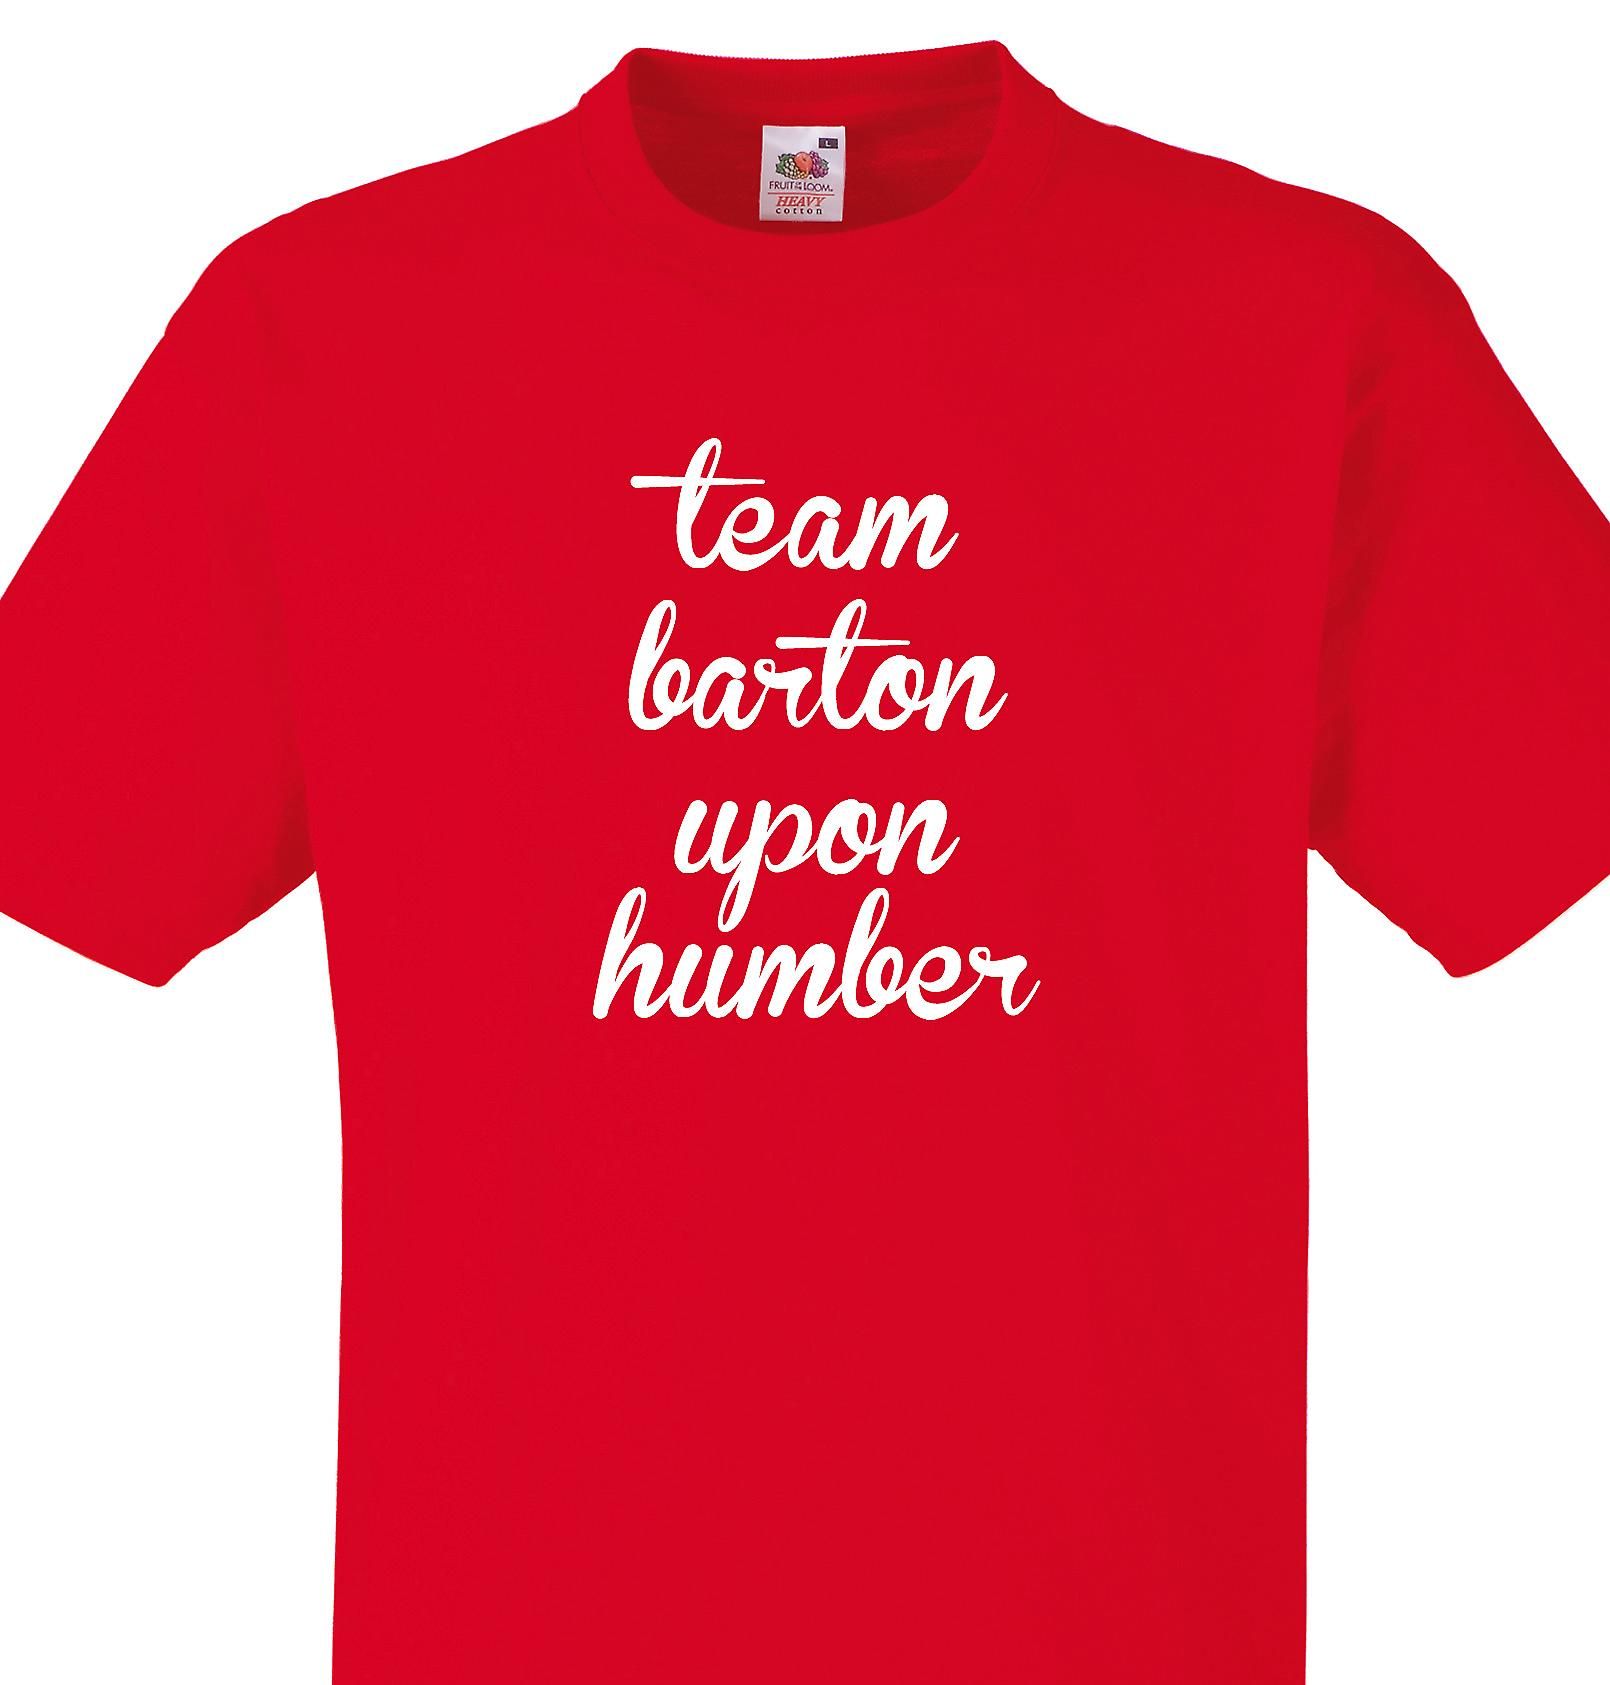 Team Barton upon humber Red T shirt